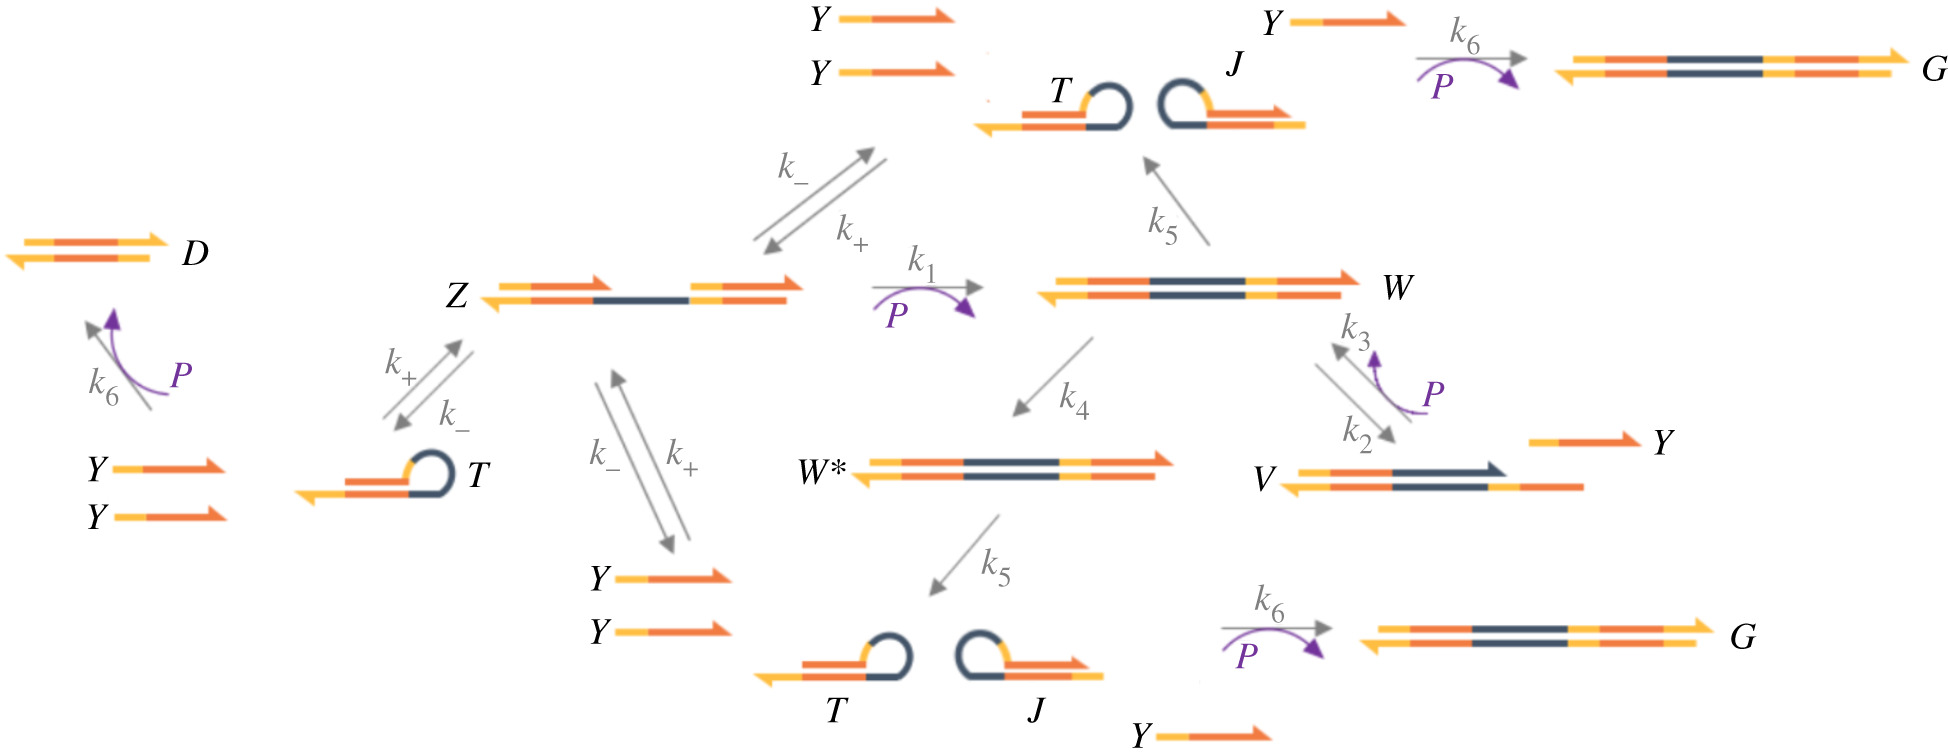 A mathematical model for a biphasic DNA amplification reaction